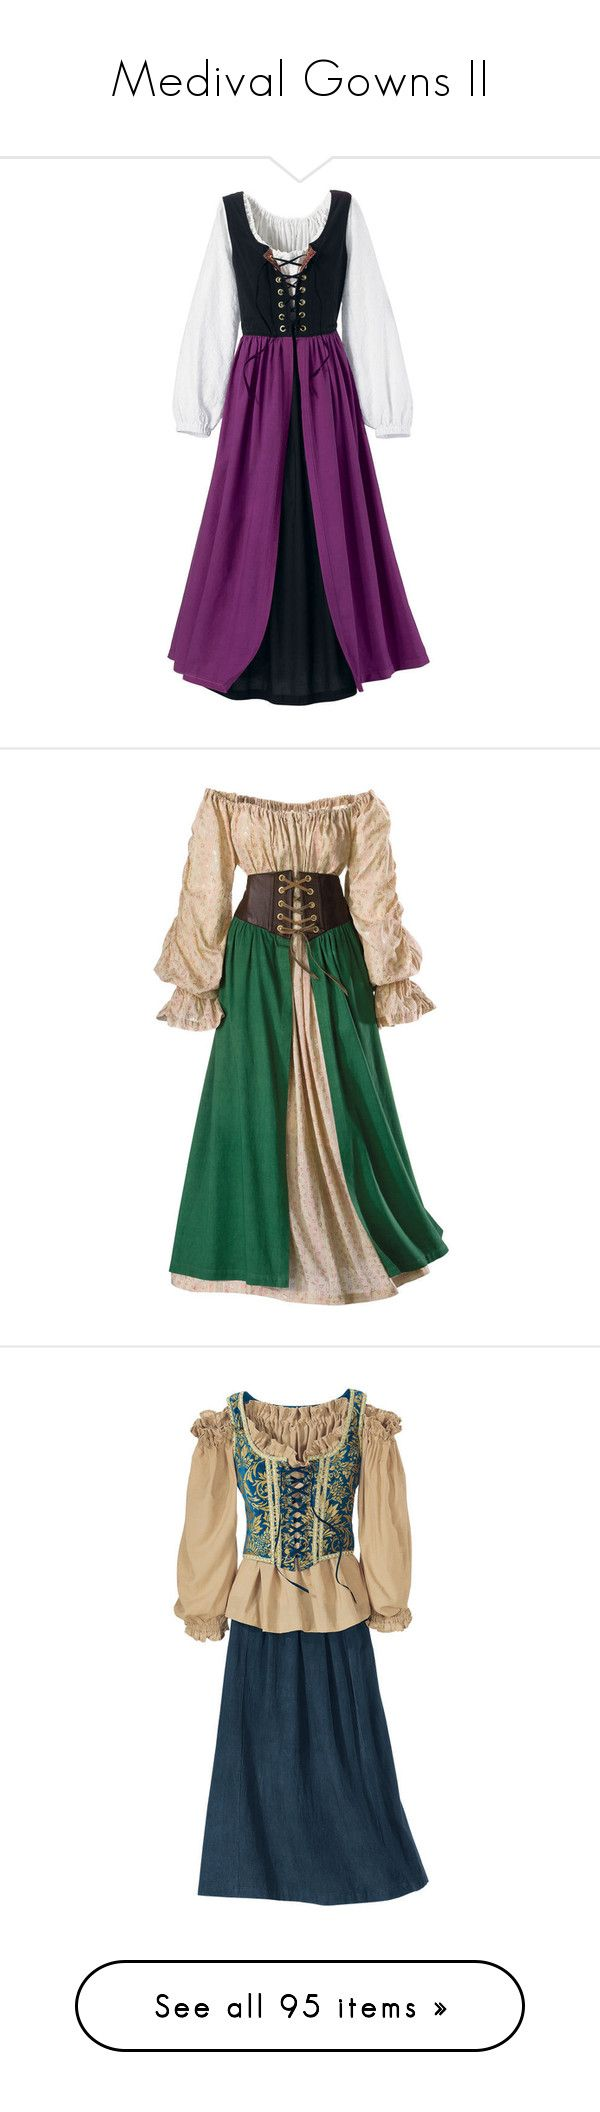 """""""Medival Gowns II"""" by savagedamsel ❤ liked on Polyvore featuring costumes, dresses, medieval, gowns, goth halloween costumes, goth costume, renaissance festival costumes, gothic halloween costumes, fairy costume and plus size"""